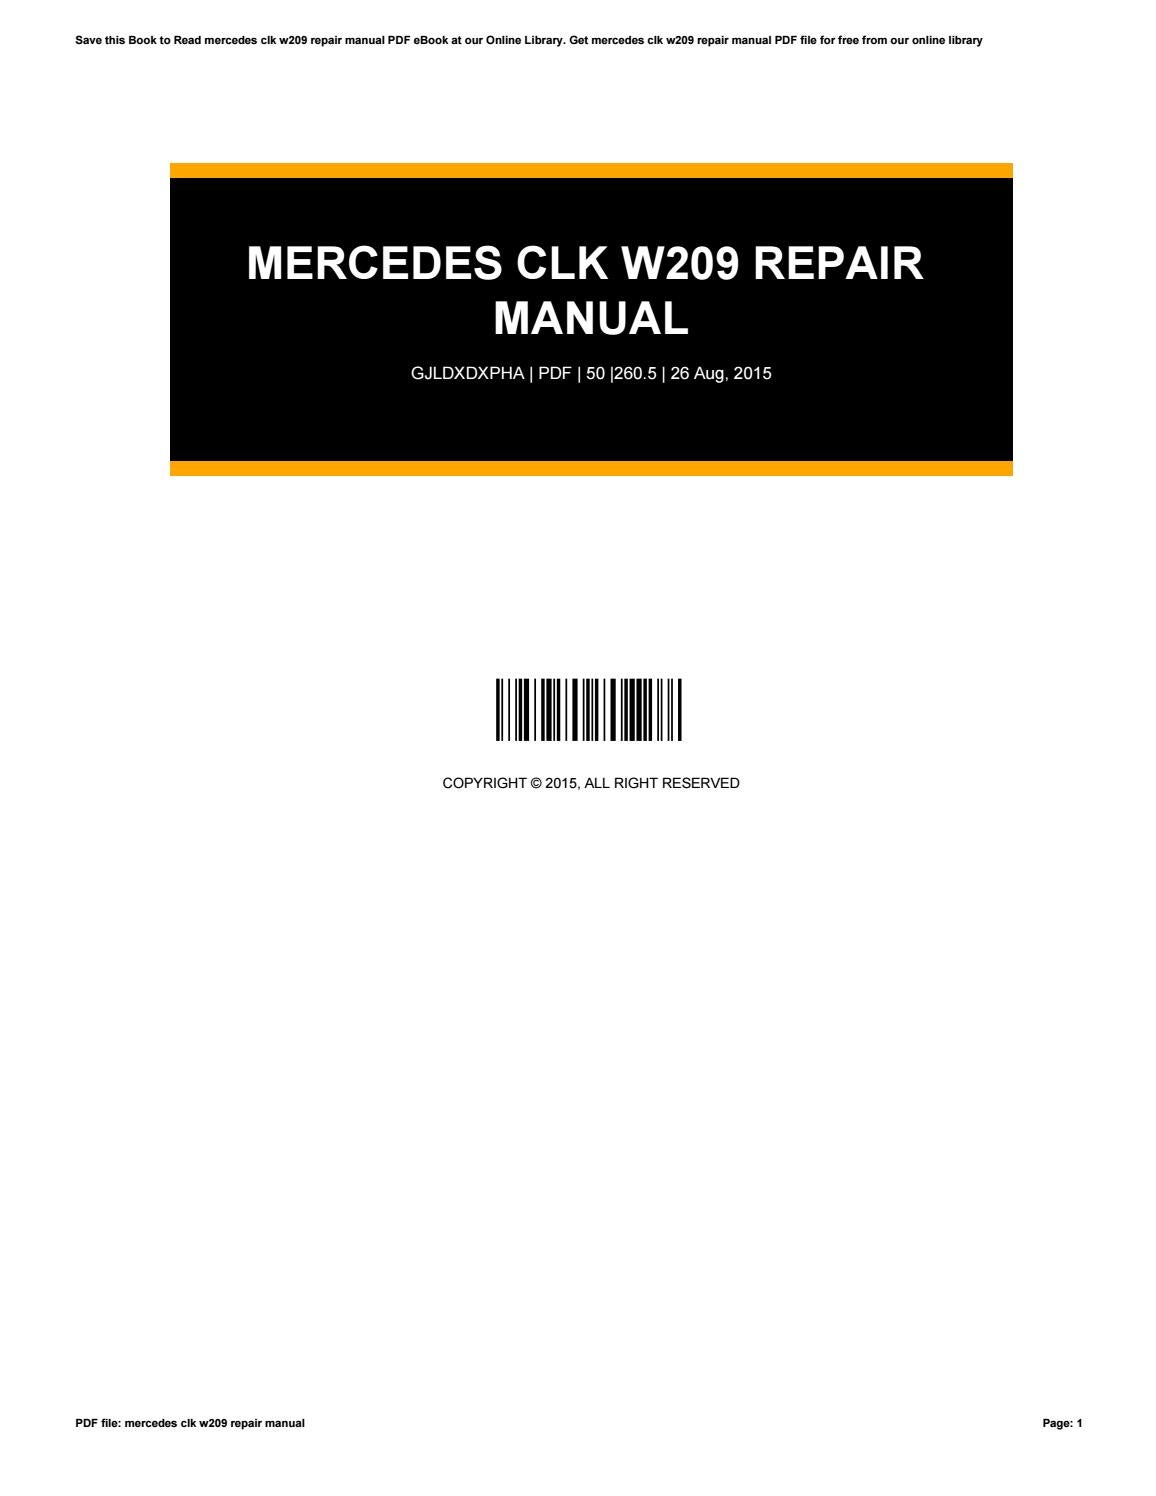 Mercedes clk w209 repair manual by Eli - Issuu